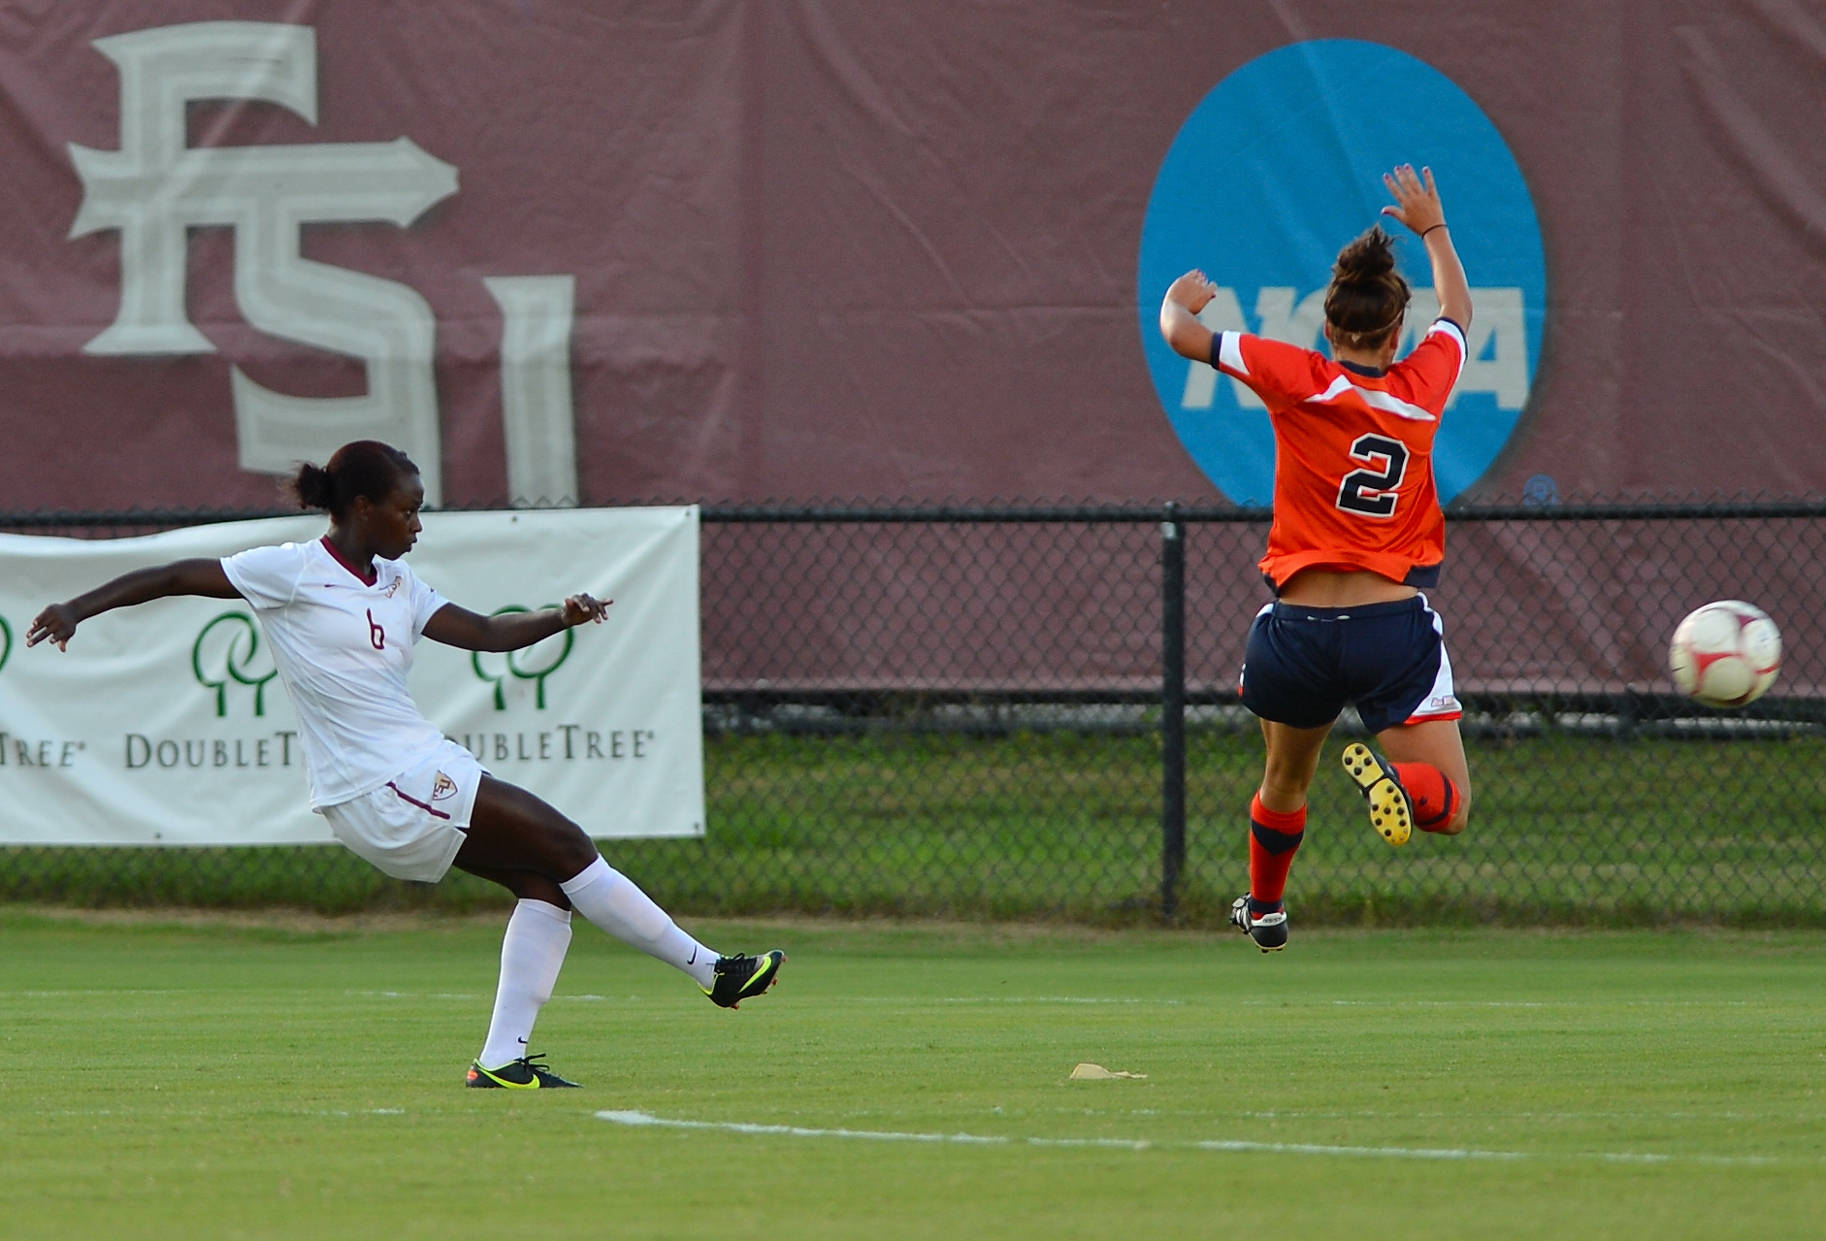 Jessica Price scores the first goal of the game in the third minute of action.